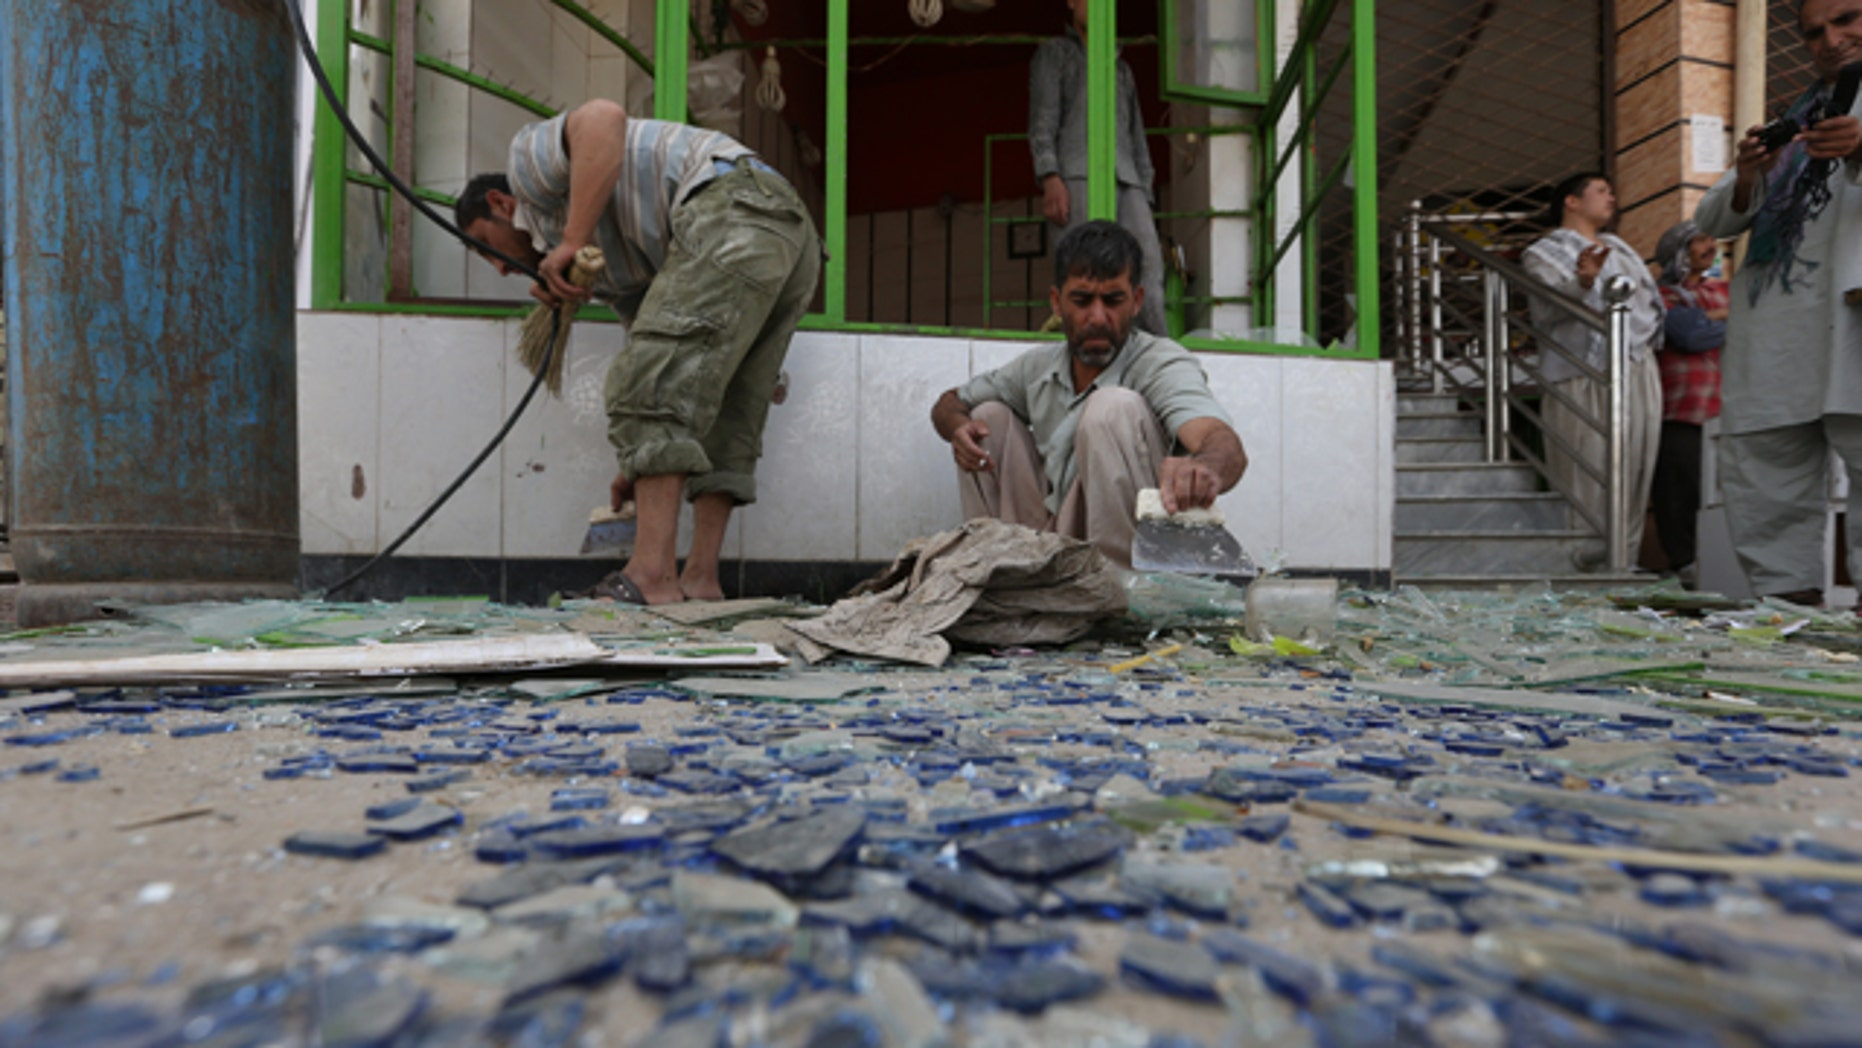 August 10, 2014: Afghan shopkeepers clean up broken glasses near the site of a suicide attack in Kabul, Afghanistan. (AP Photo/Rahmat Gul)